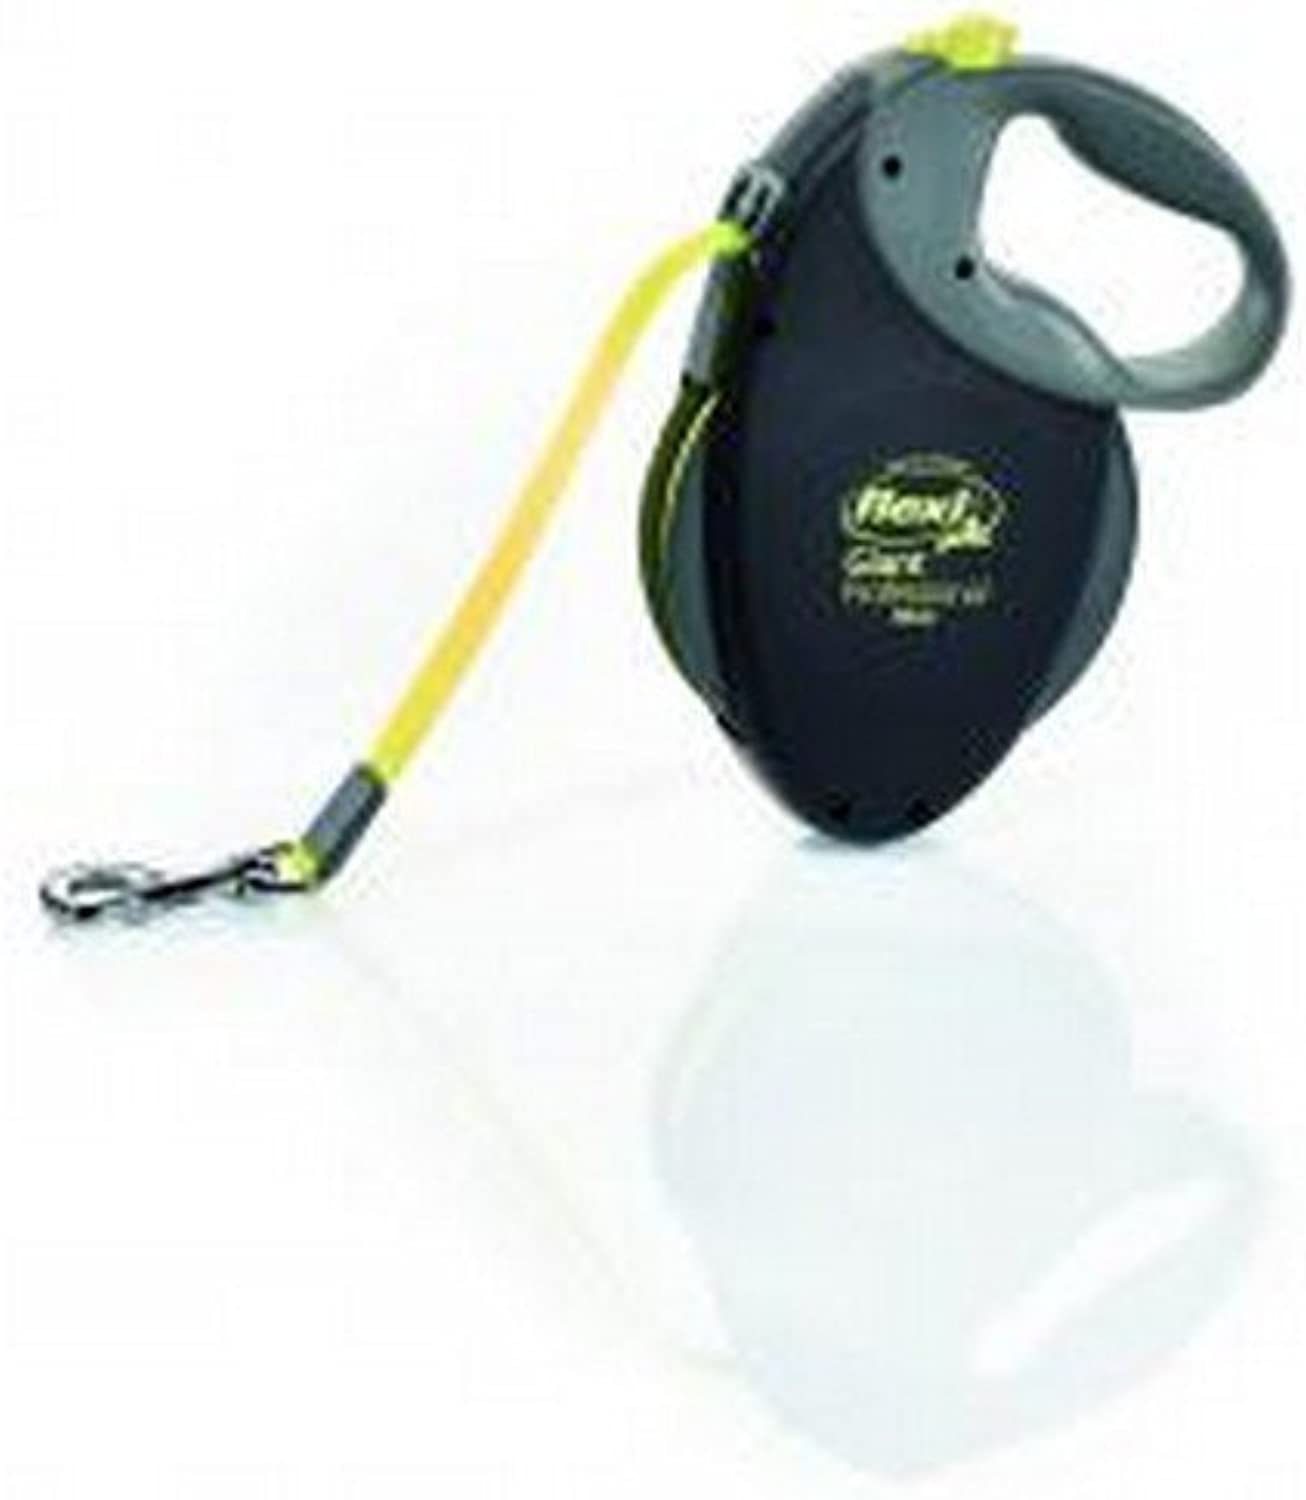 FlexiBogd Giant Professional Large Black With Neon Tape Dog Lead (10M)